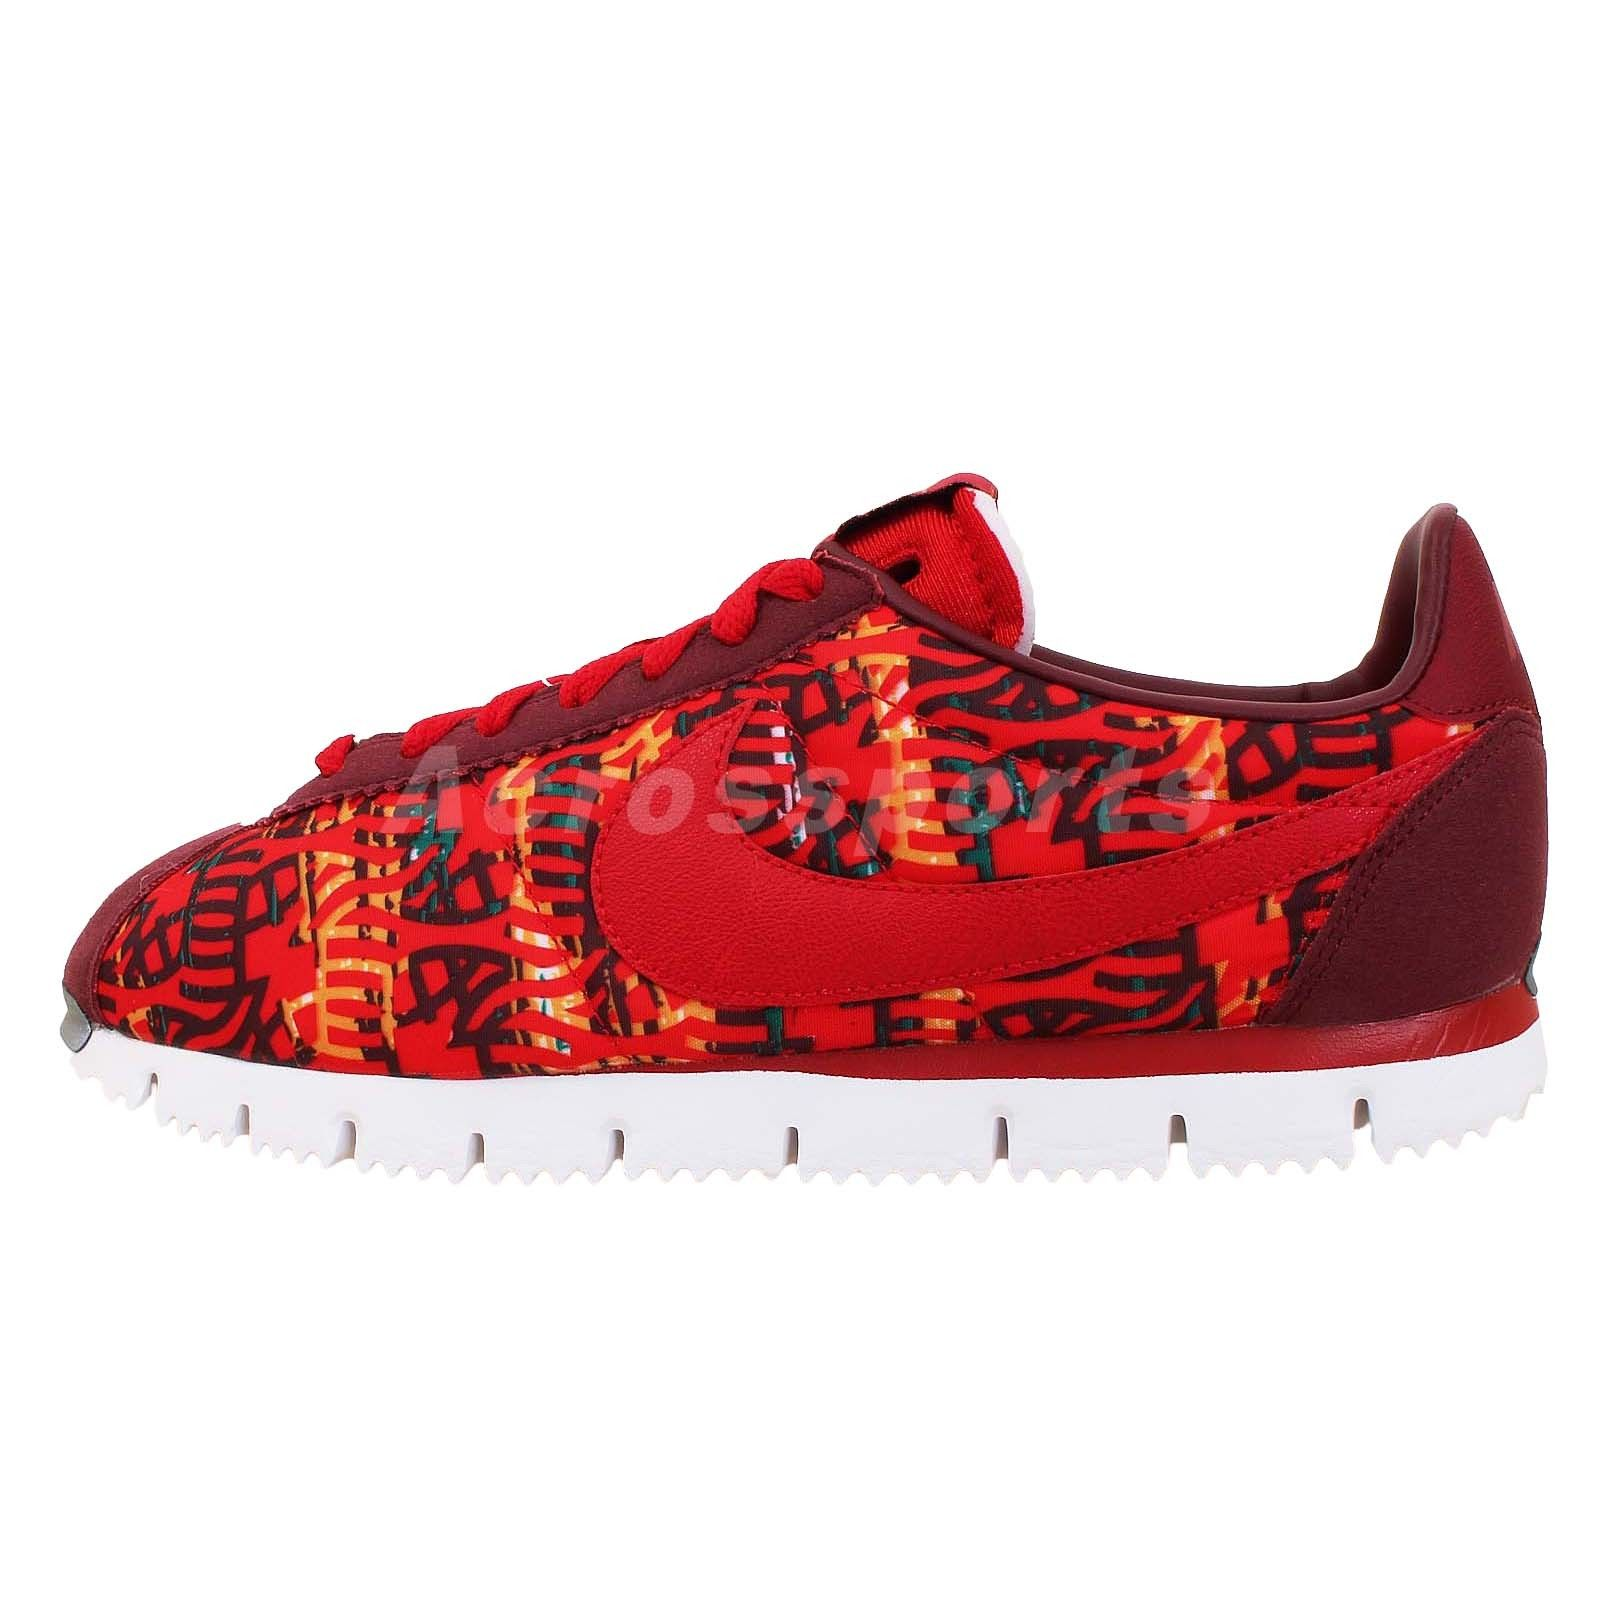 nike-cortez-nm-prm-qs-year-of-the-horse-1